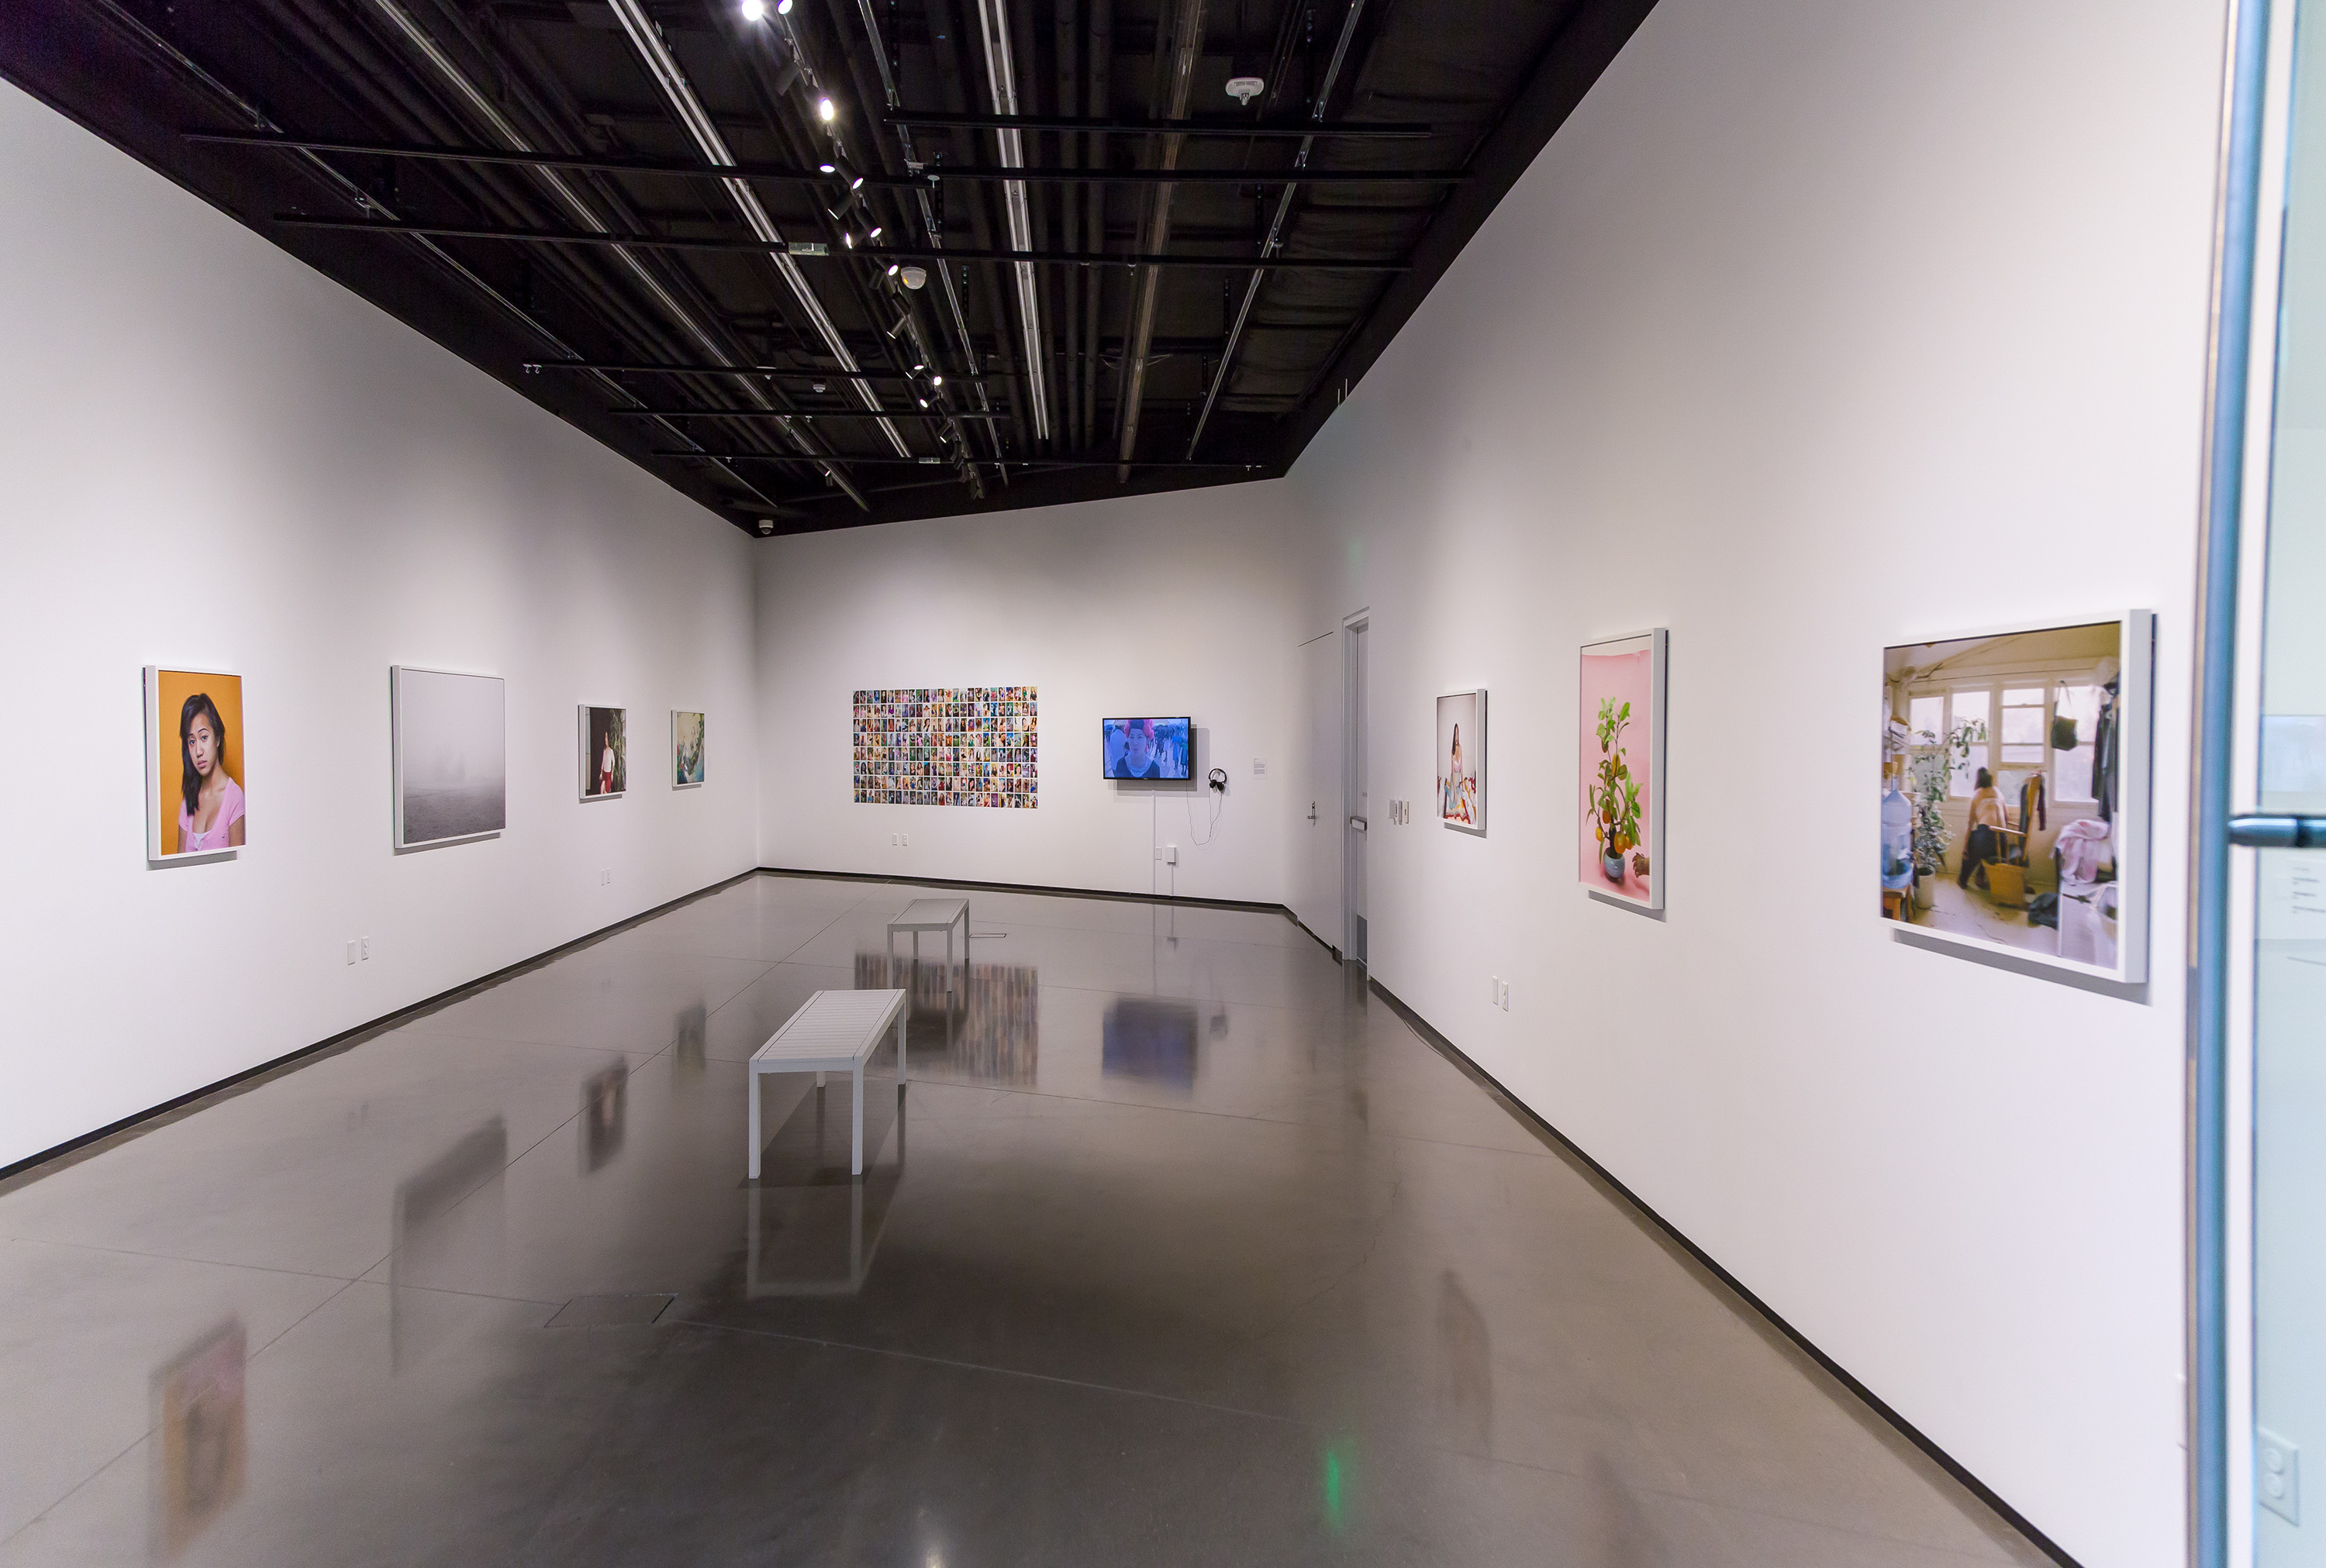 <i>Focus: Pao Houa Her</i>, installation view at the Eli and Edythe Broad Art Museum at Michigan State University, 2015. Photo: MSU Broad